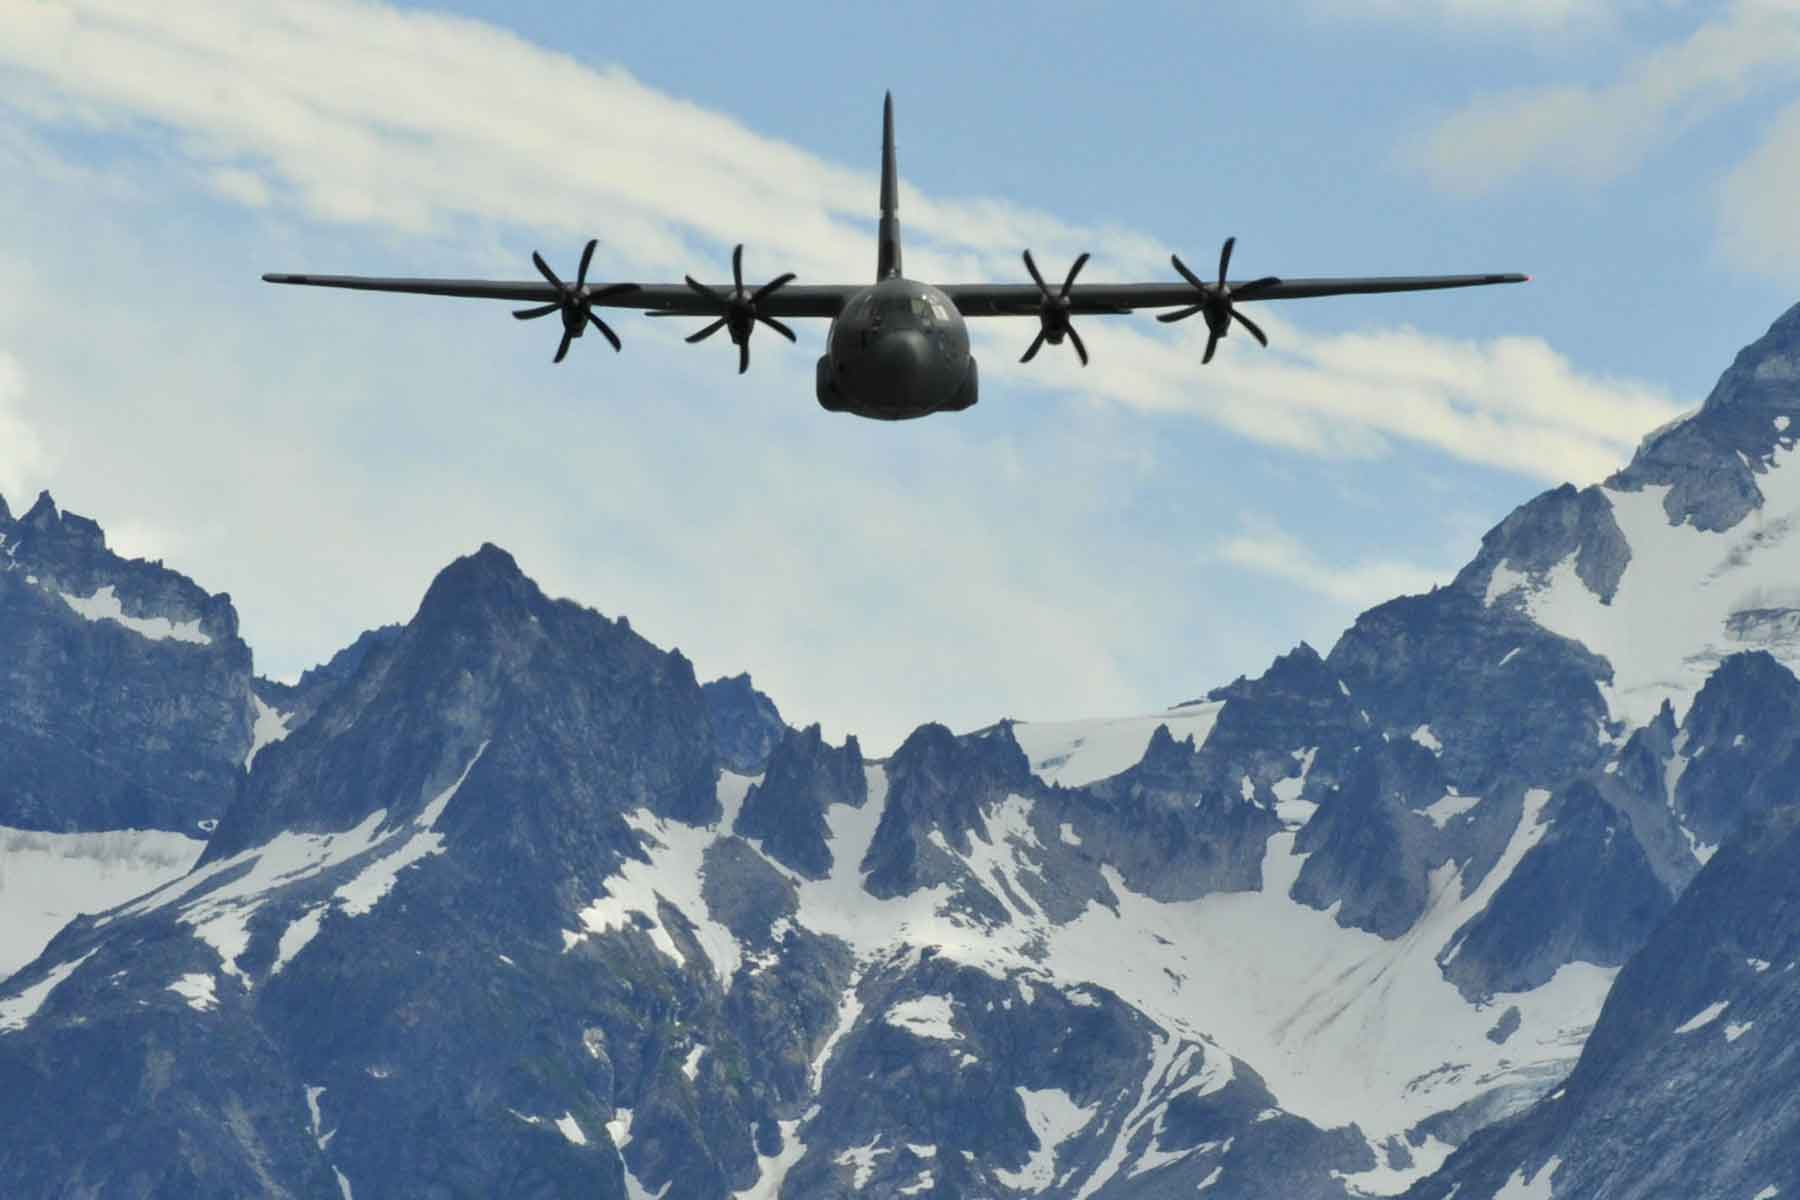 Accident Forces Air Force To Write Off New Gunship